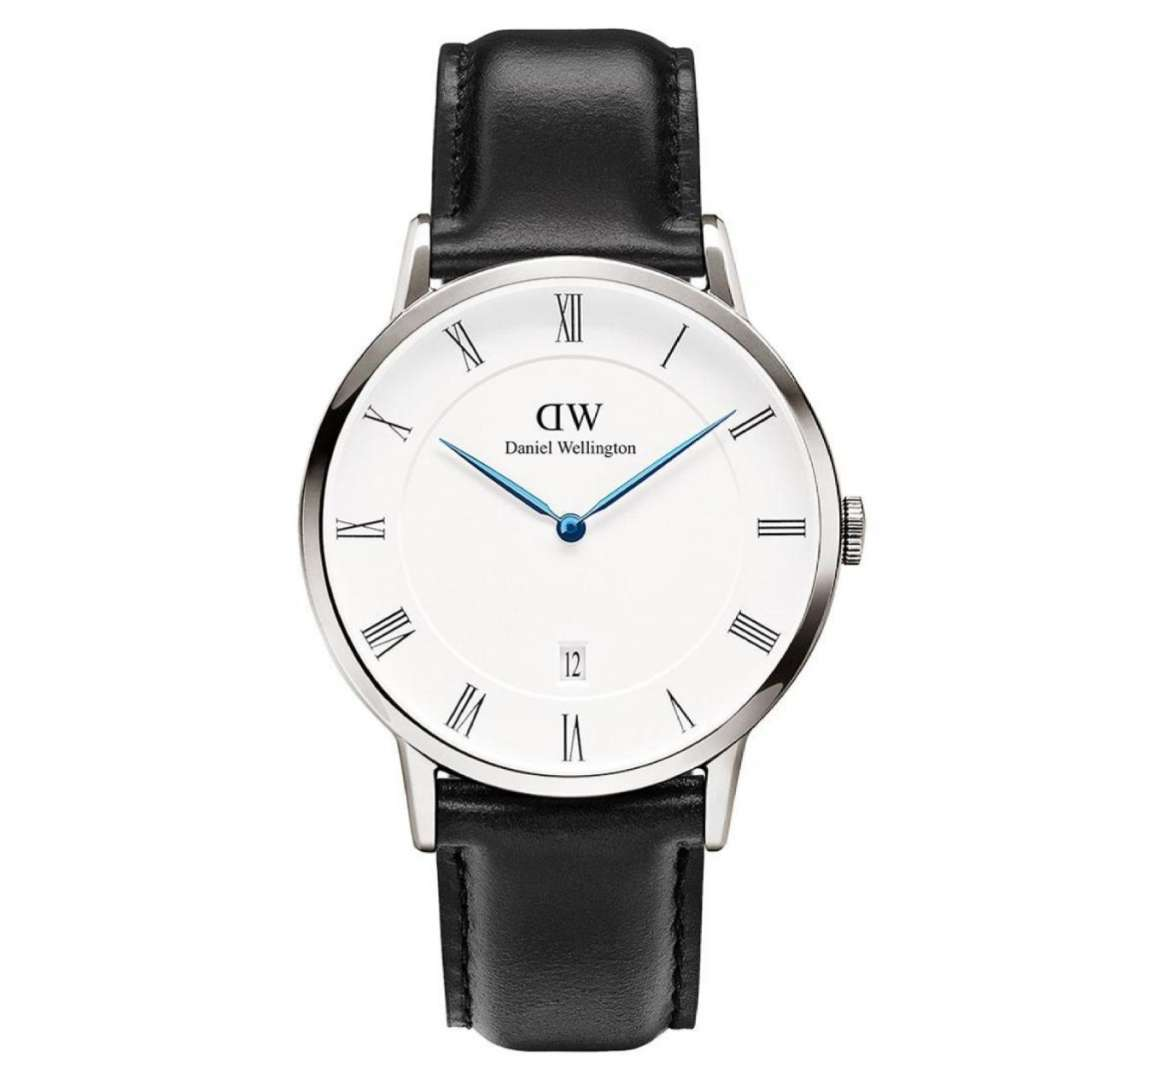 שעון יד אנלוגי daniel wellington 1141DW דניאל וולינגטון